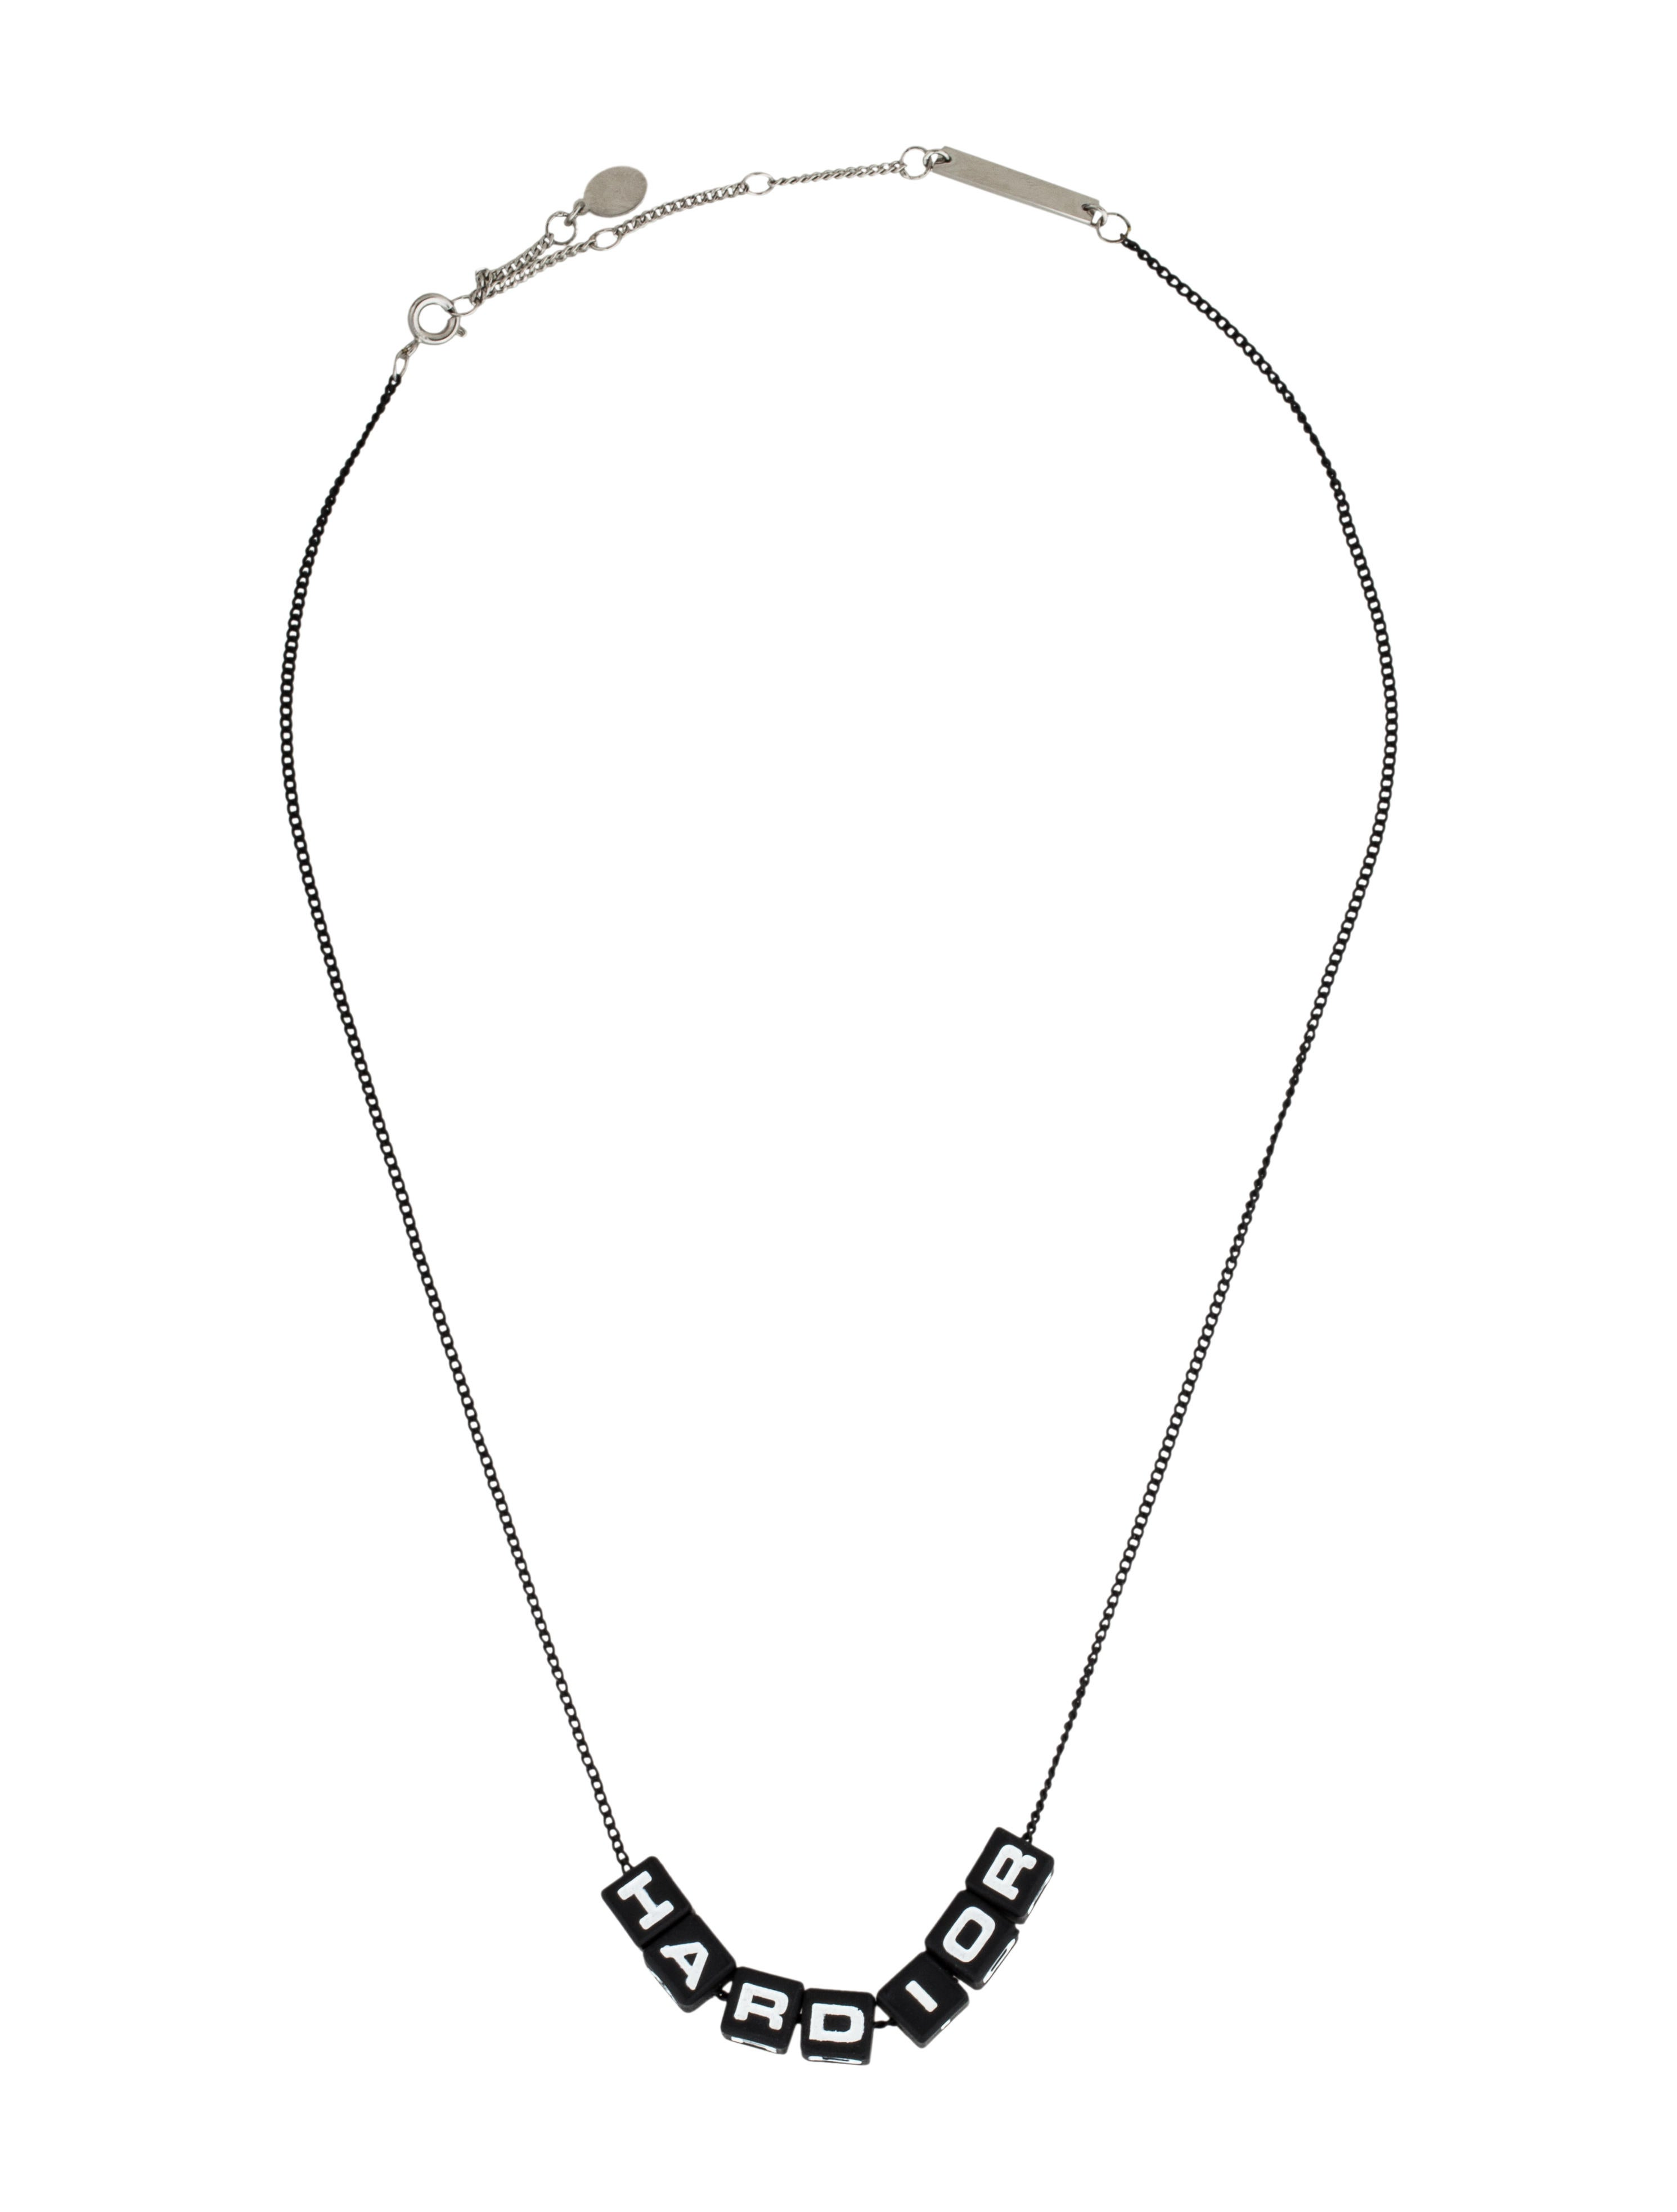 dior homme hardior chain necklace necklaces hmm22404 the